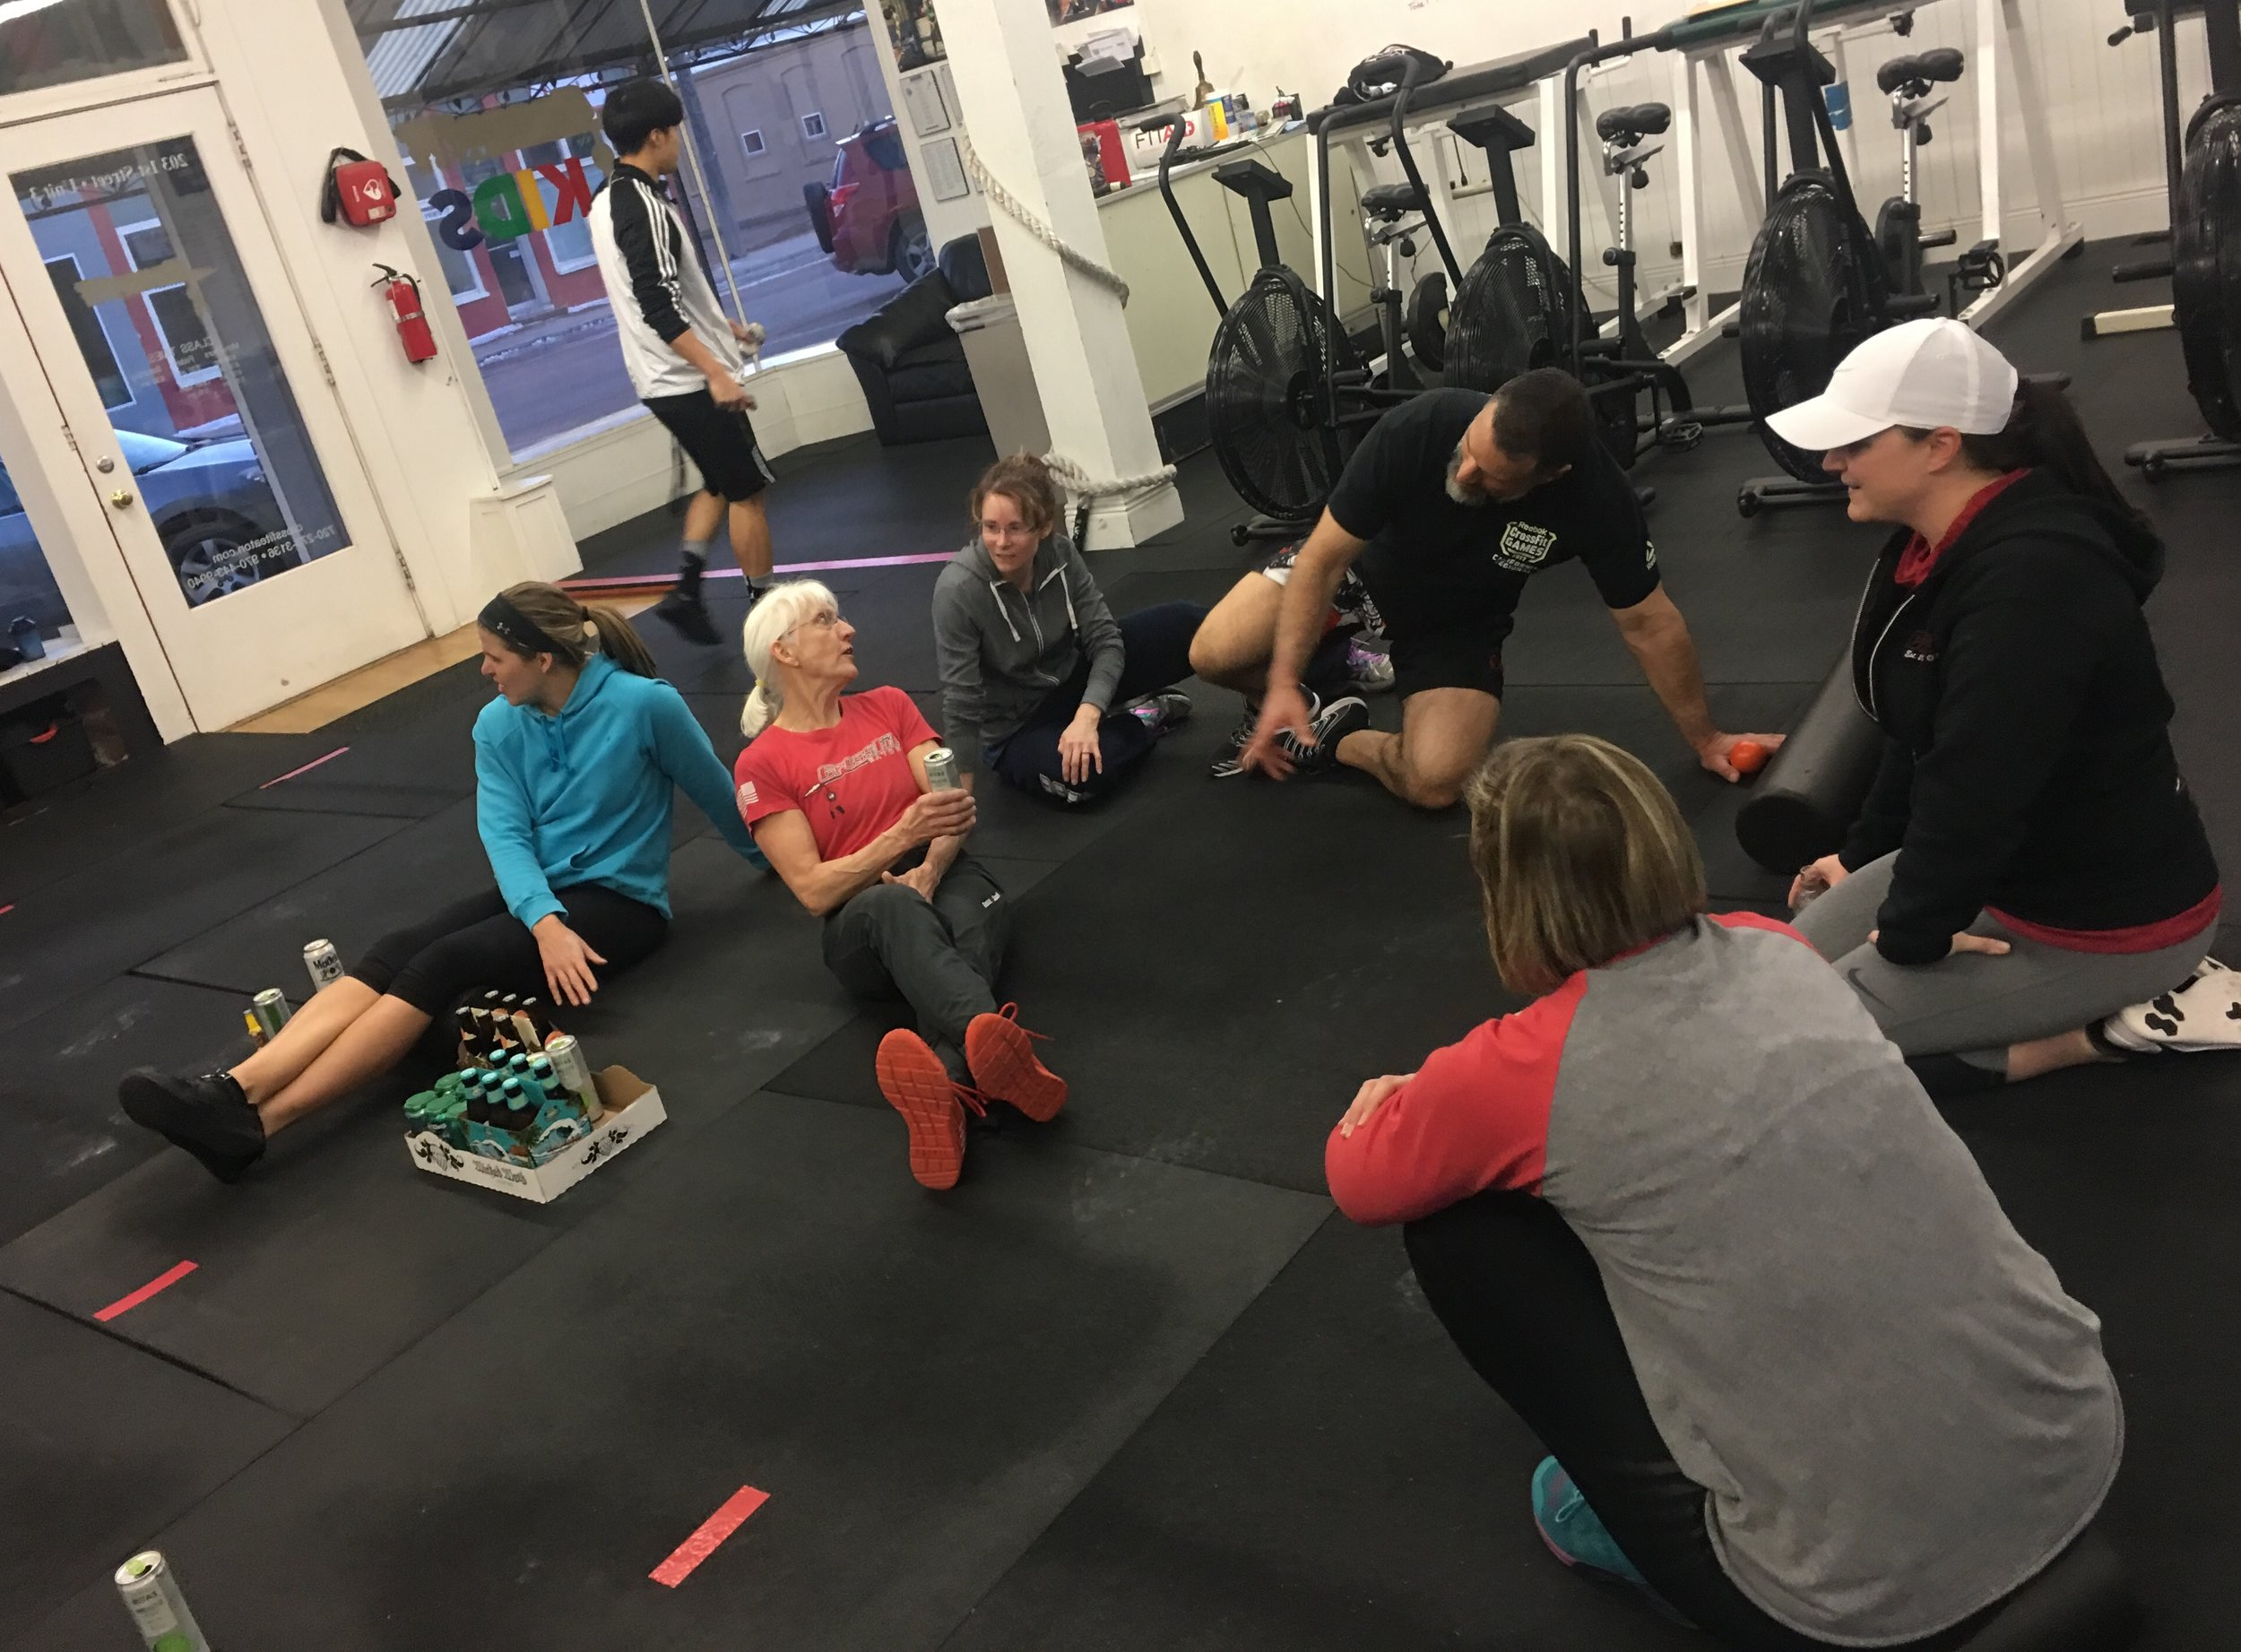 Best part of CrossFit Eaton: The community!  Final games wod coming up and don't forget about our post 19.6 team wod and party on March 29th! Get in those points for your team this weekend…last chance!